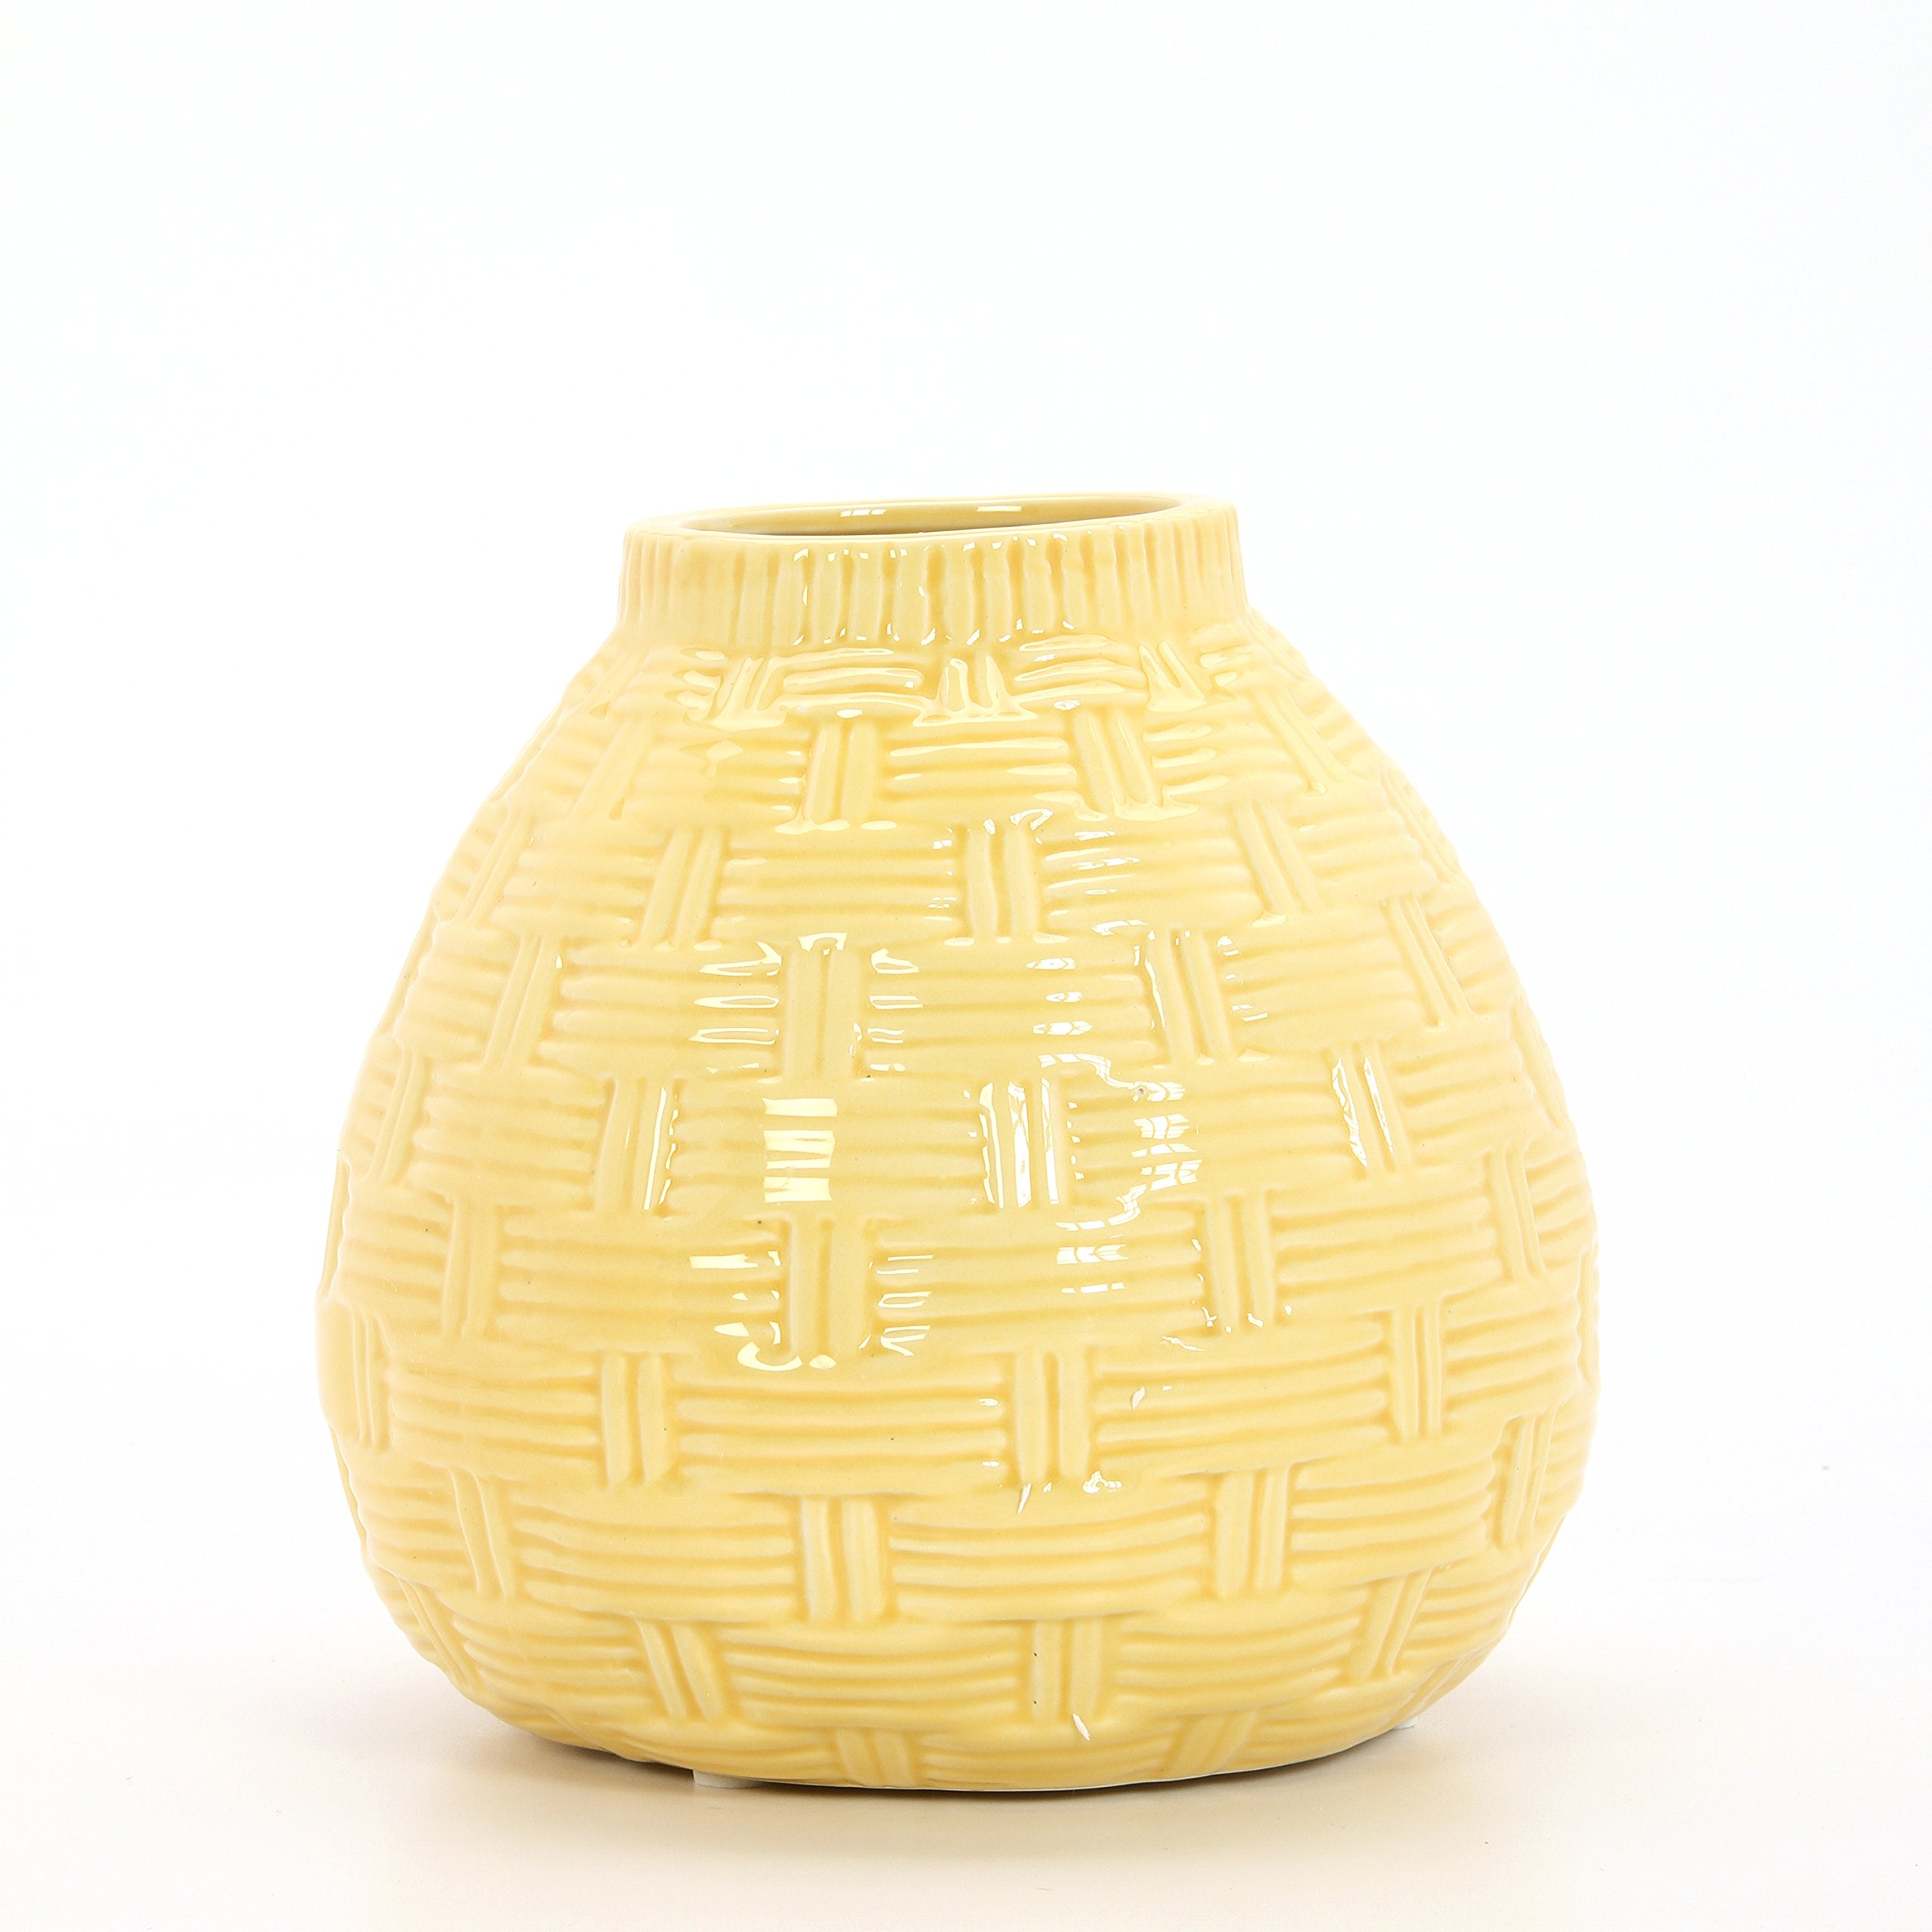 Hosley 6.5'' High Yellow Ceramic Table Top or Floor Vase. Ideal Gift for Wedding, Bridal, or Party O6